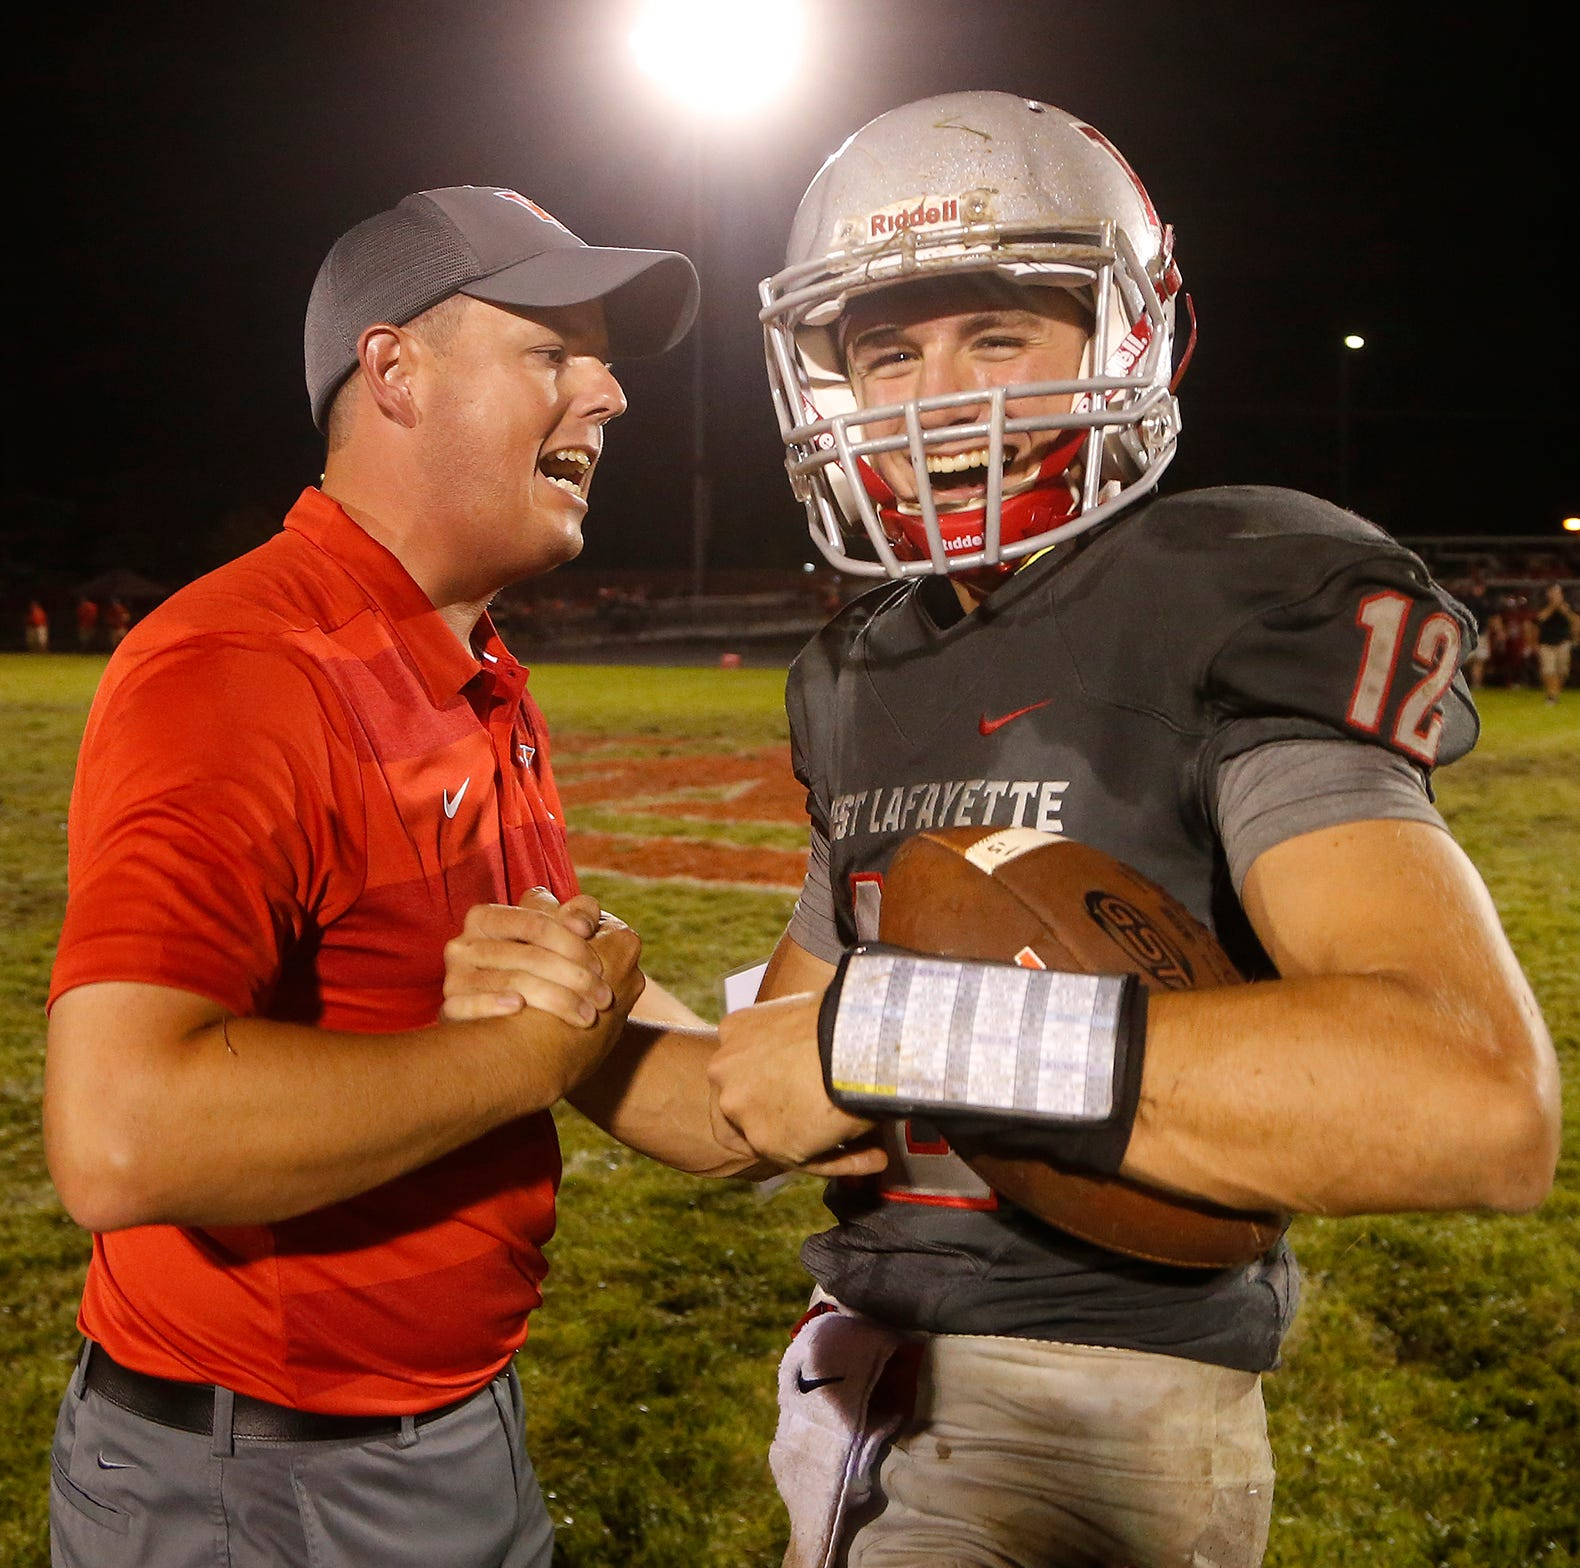 West Lafayette football rallies to beat Jeff after 65-year hiatus